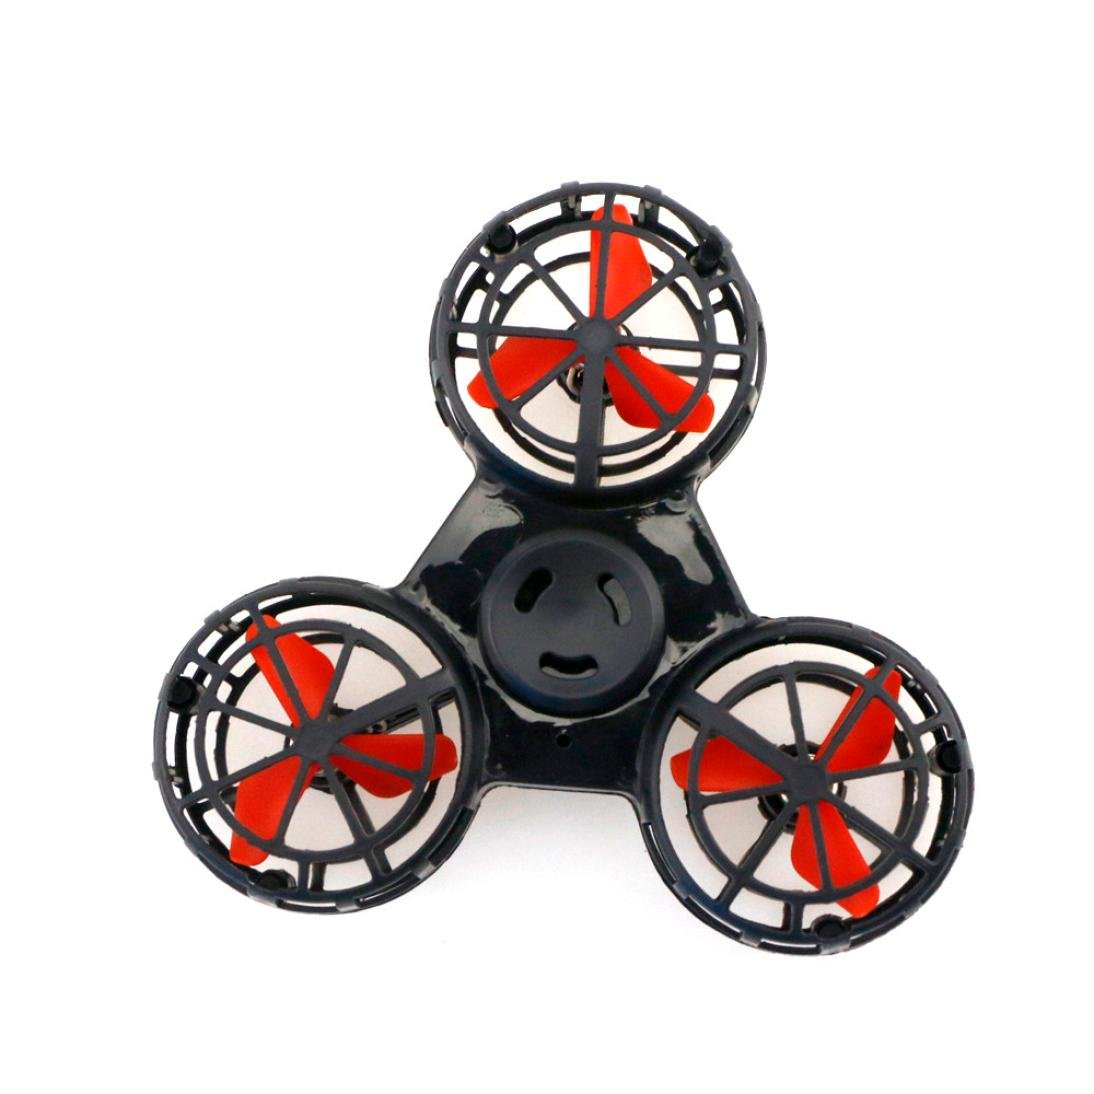 wuyimc ® TinyおもちゃドローンFlying Fidgetスピナー、anti-anxiety Stress ReliefギフトFlying GYROSCOP Toy Toys for Kids Adult B07DJZKNHQ  ブラック